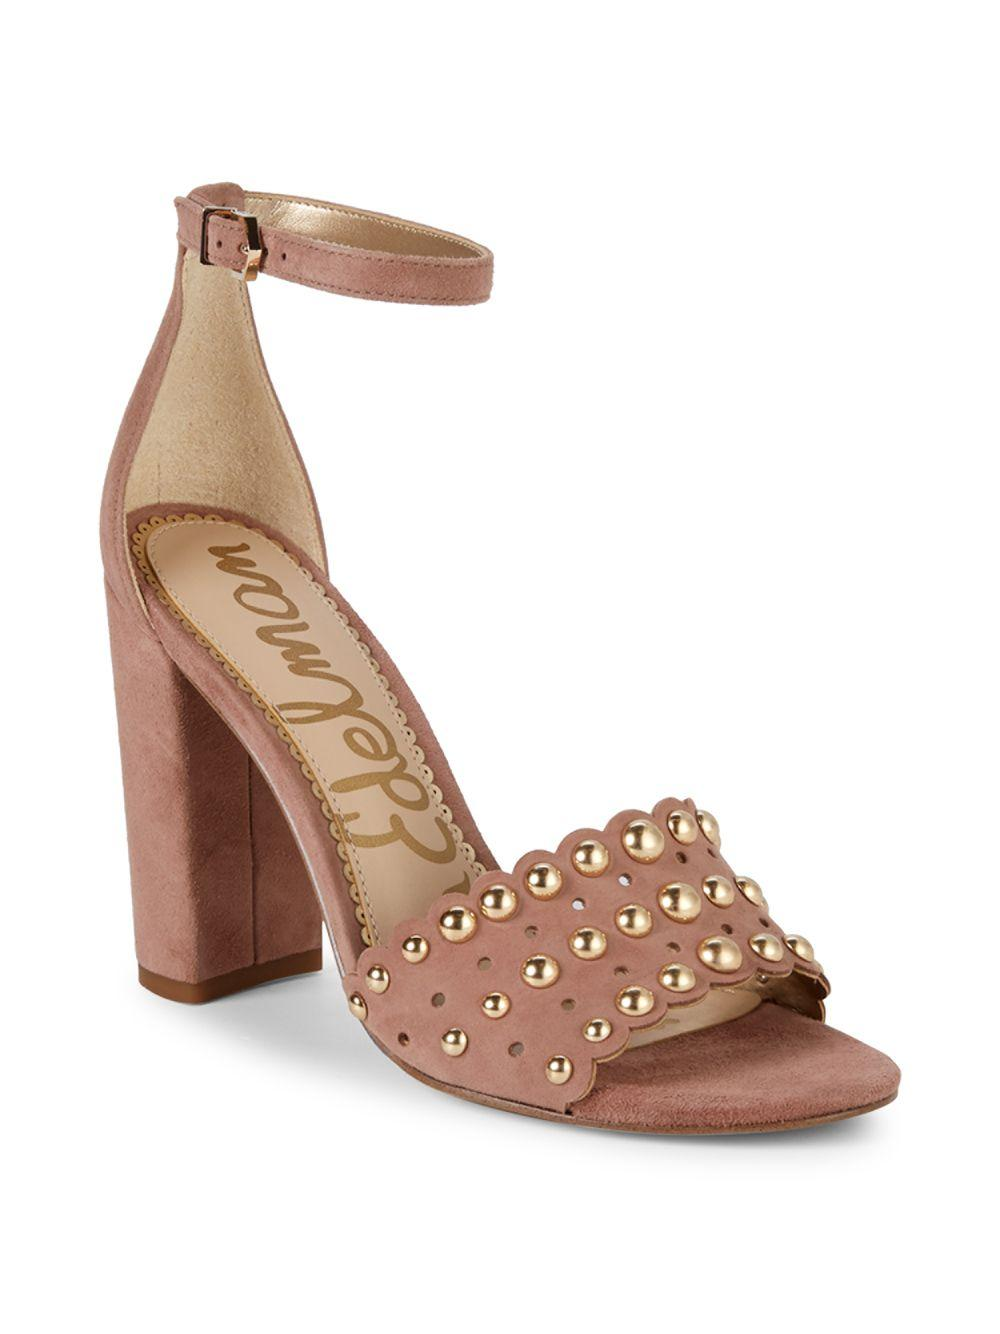 3460101f9 Lyst - Sam Edelman Yaria Studded Suede Block-heel Sandals in Brown